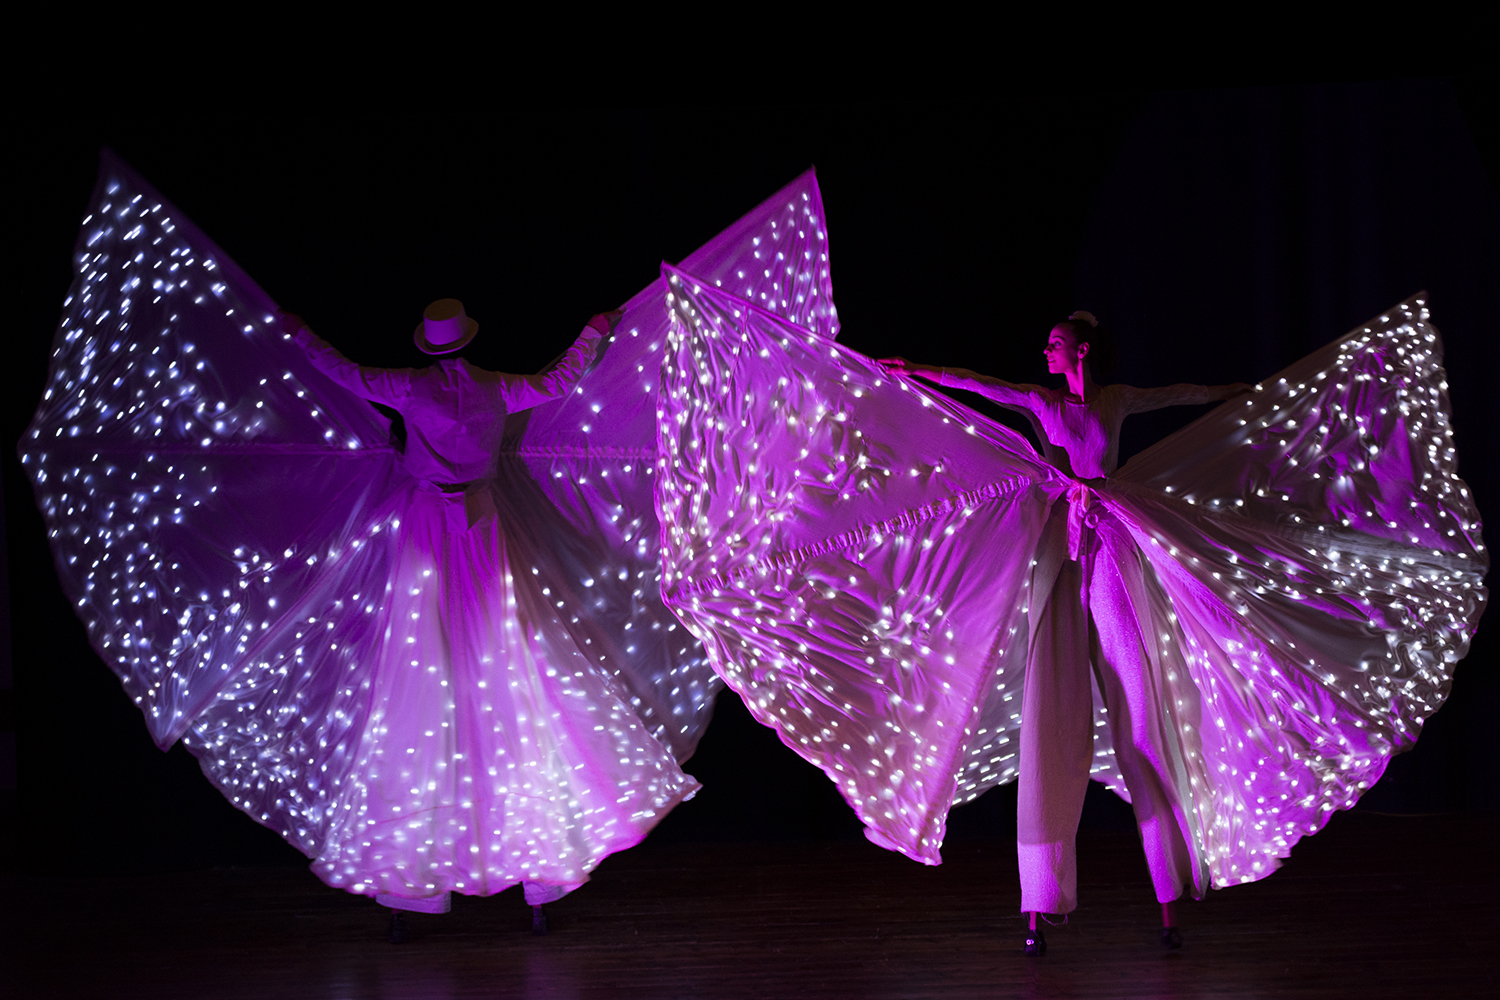 13-light-butterfly-show.jpg